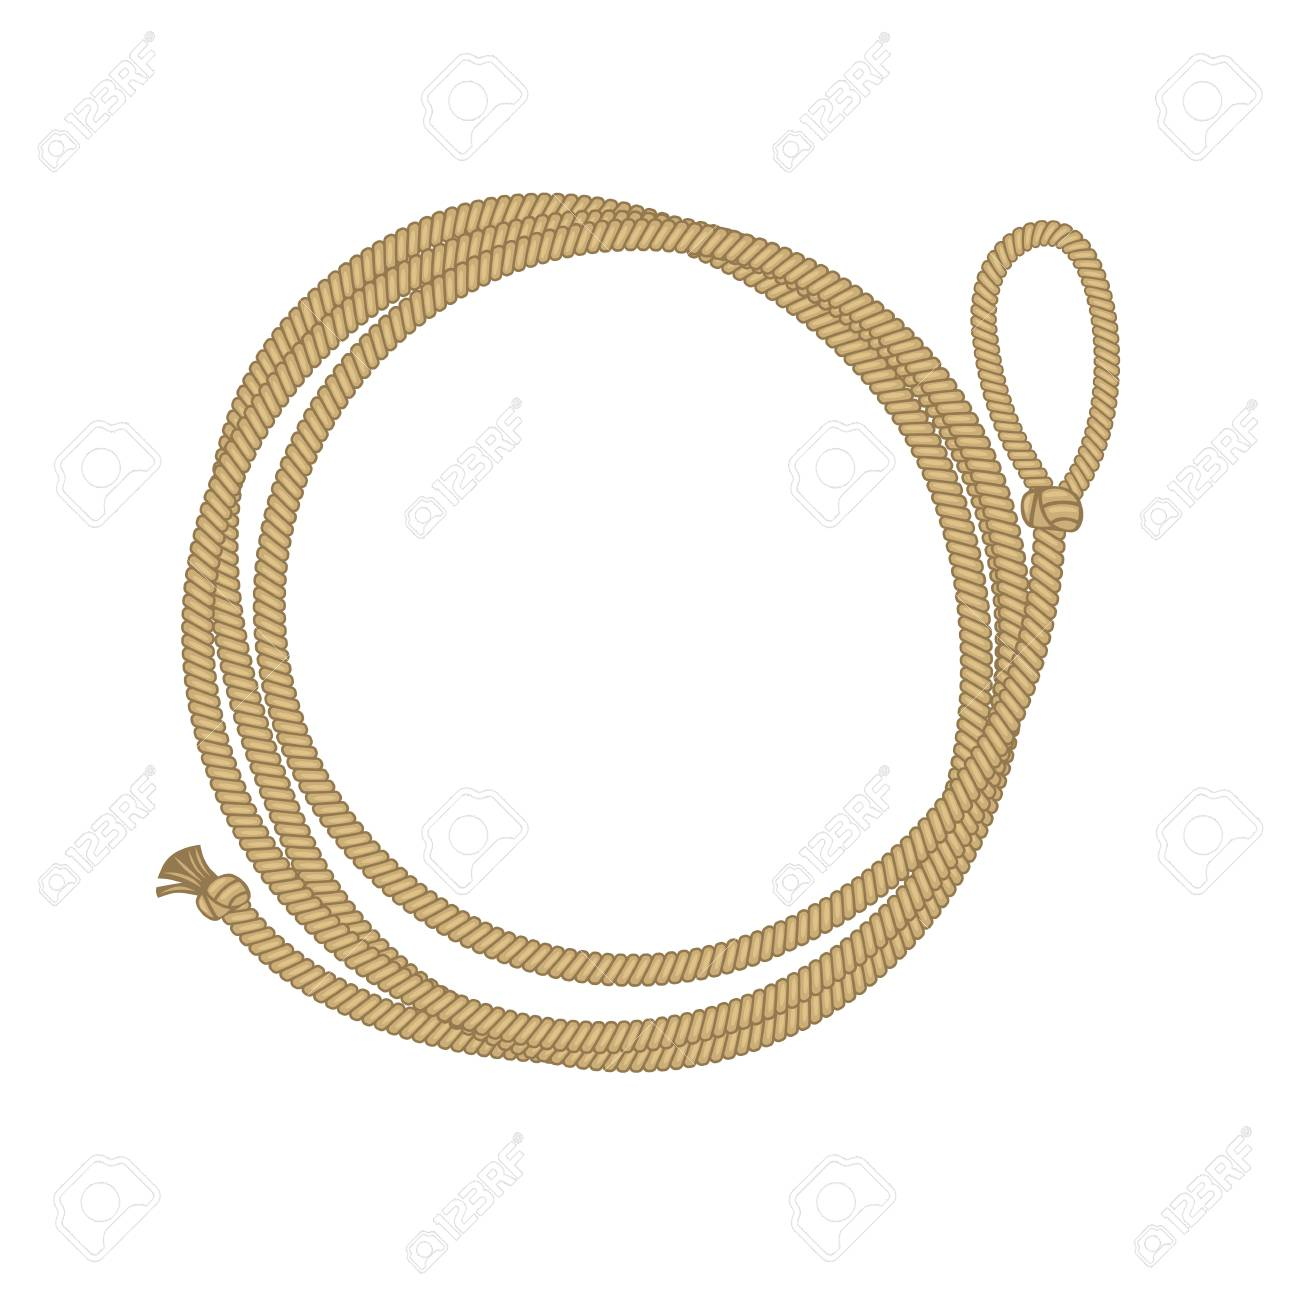 lasso circle frame. cowboy rope vector illustration with place.. royalty  free cliparts, vectors, and stock illustration. image 105593488.  123rf